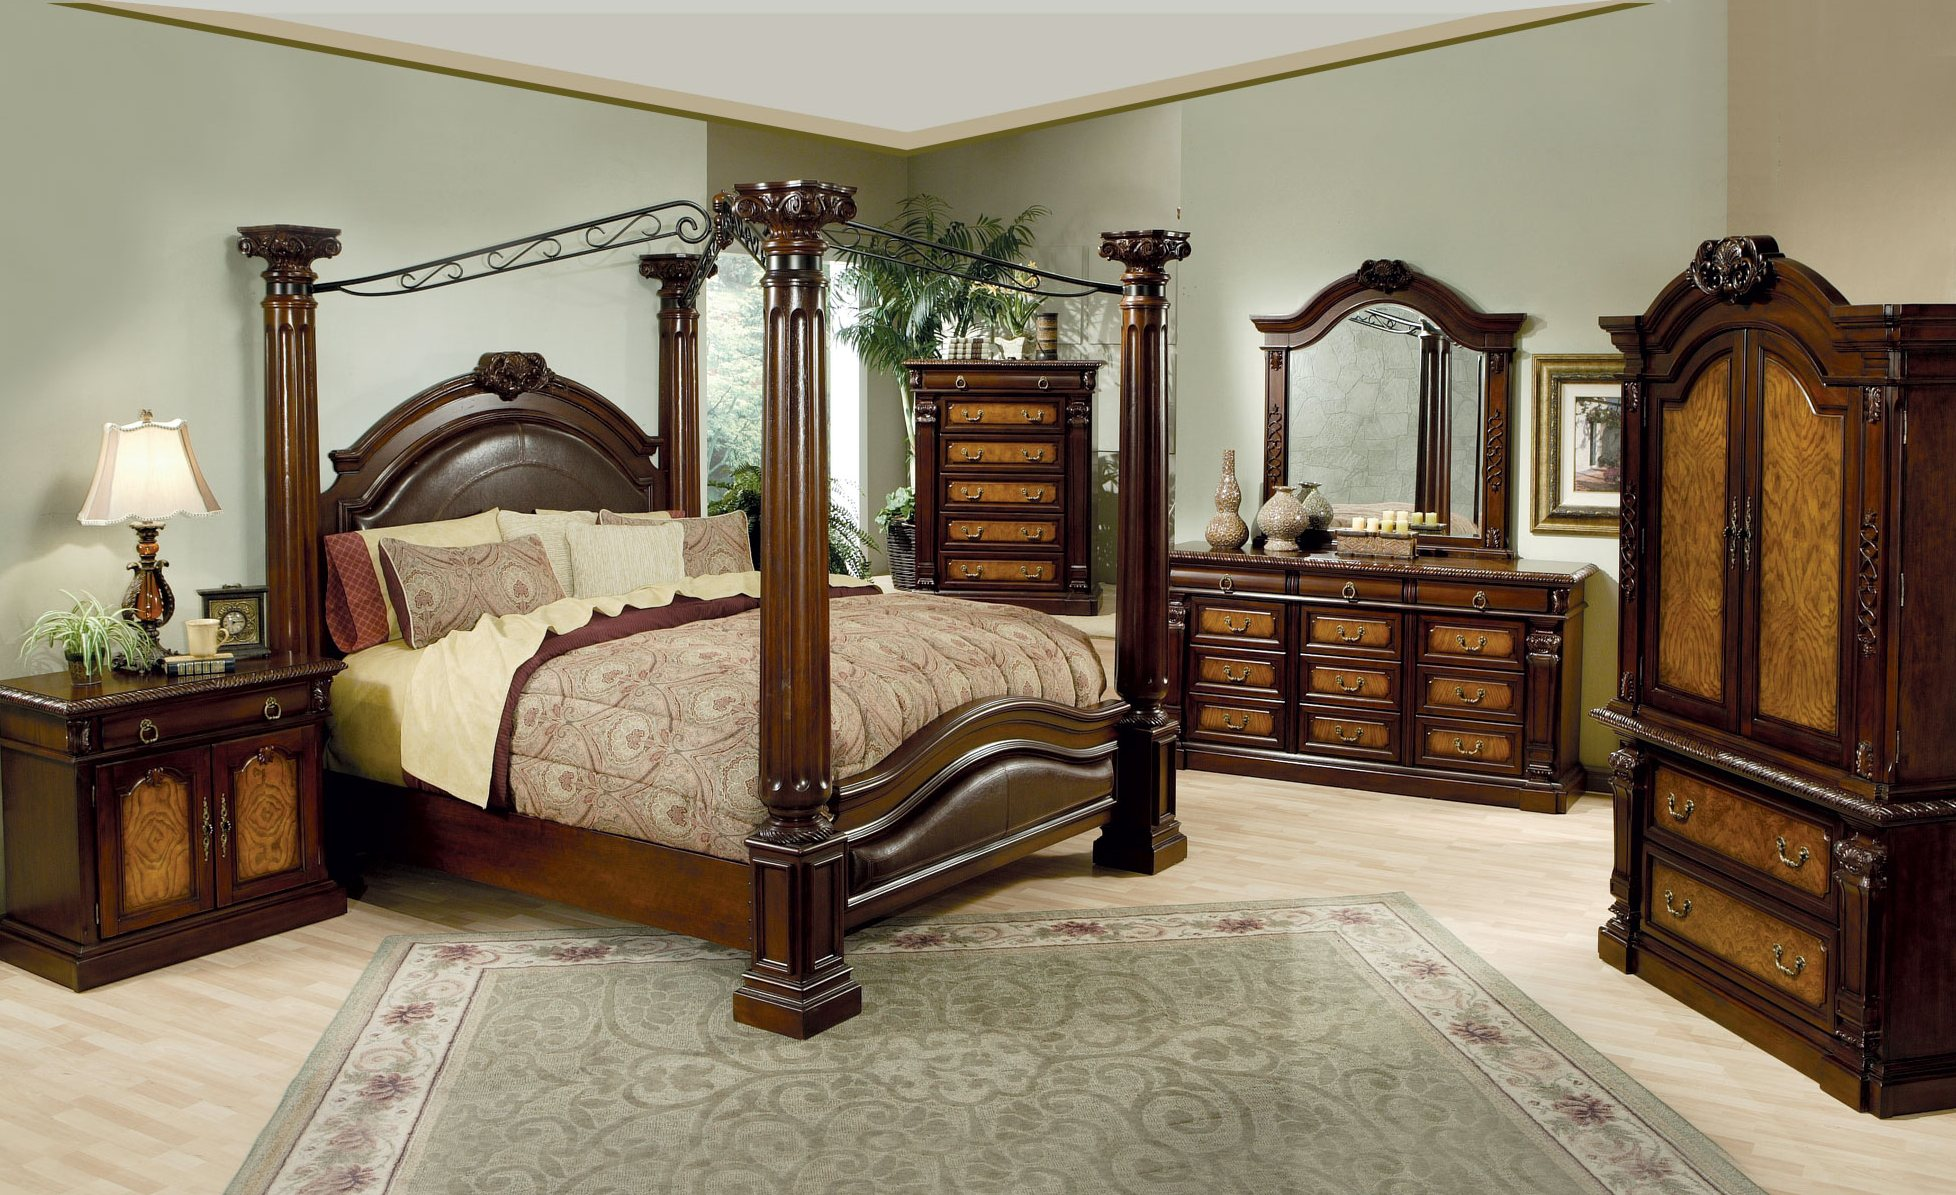 Gorgeous Bedroom Fill with King Size Canopy Bed: Lovely King Size Canopy Bed With Dresstable And Mirror